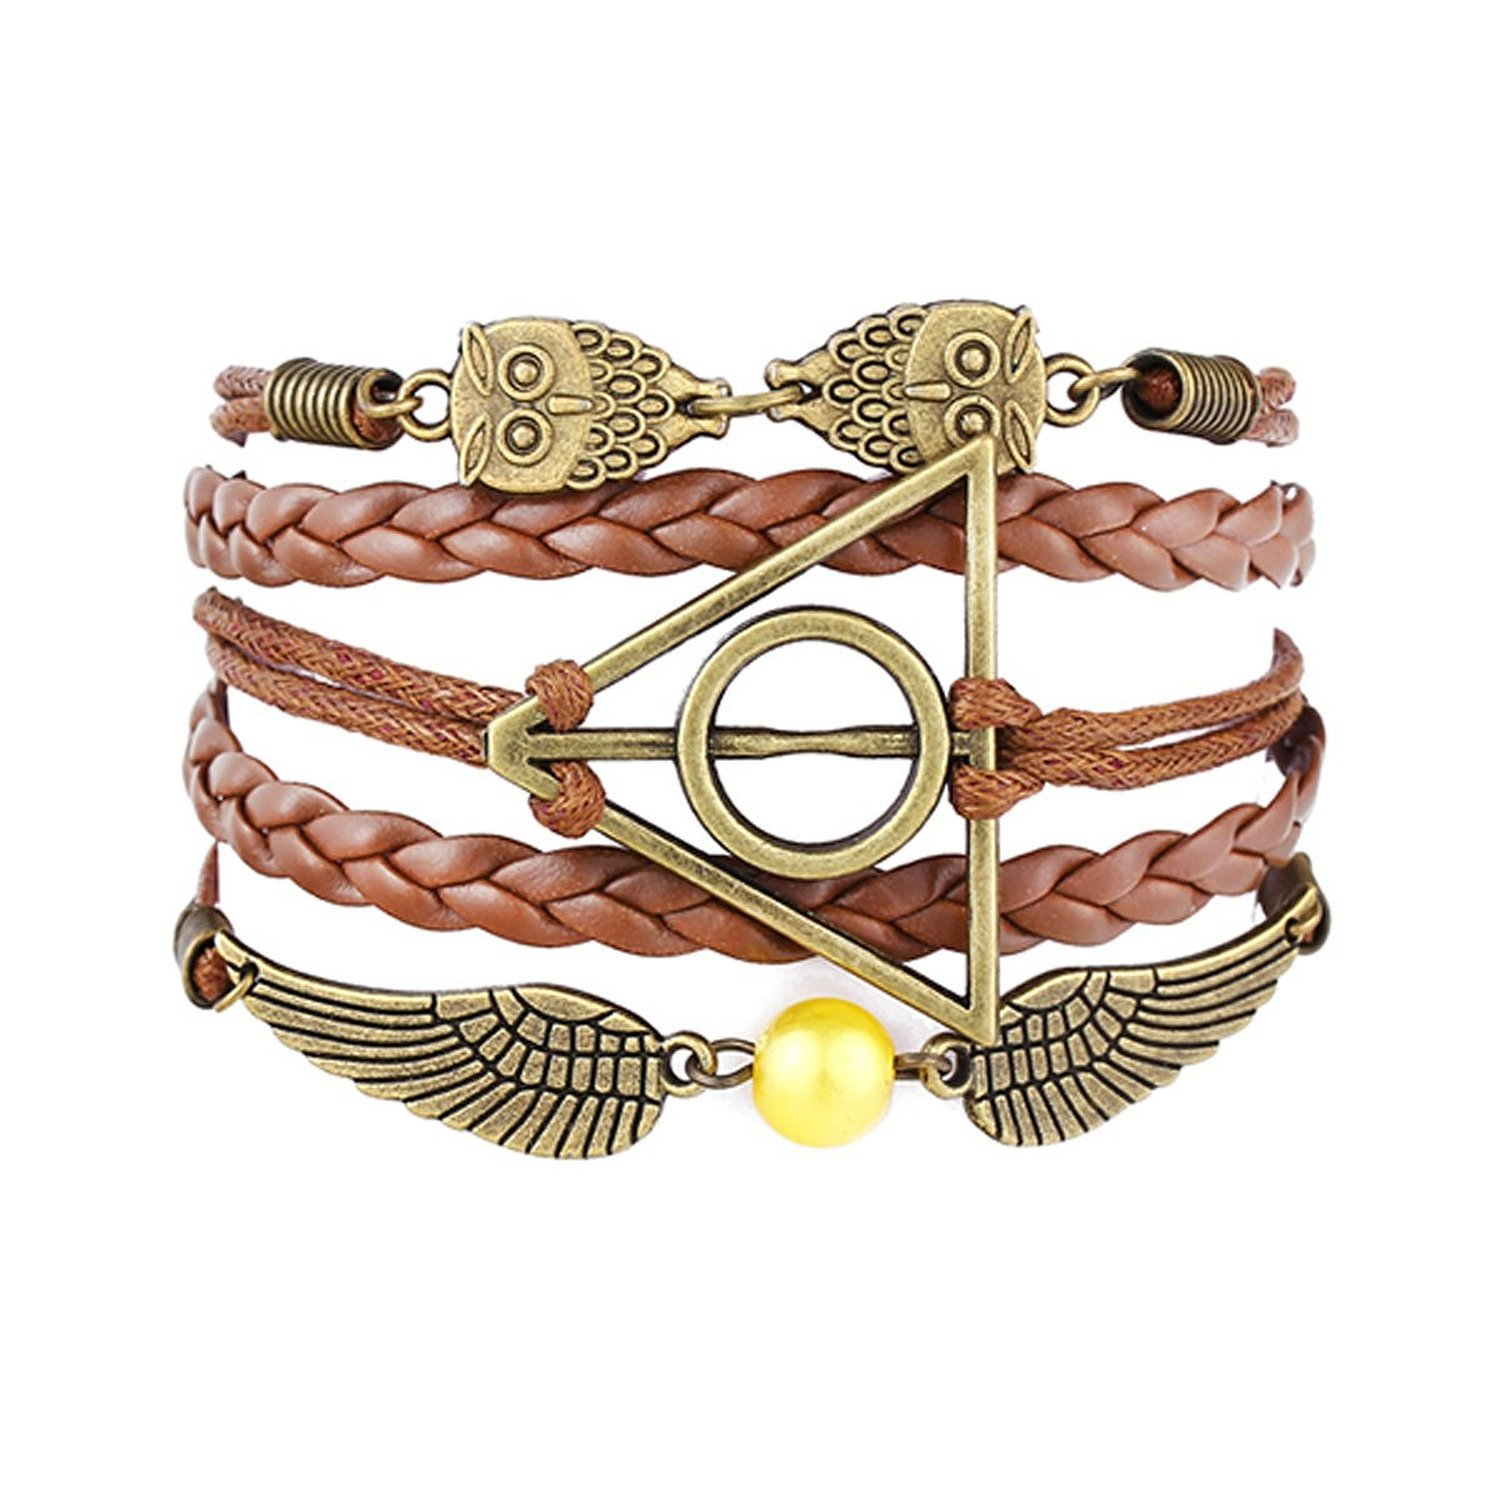 13 Varients Accessorisingg Collection of HP Inspired Bracelets